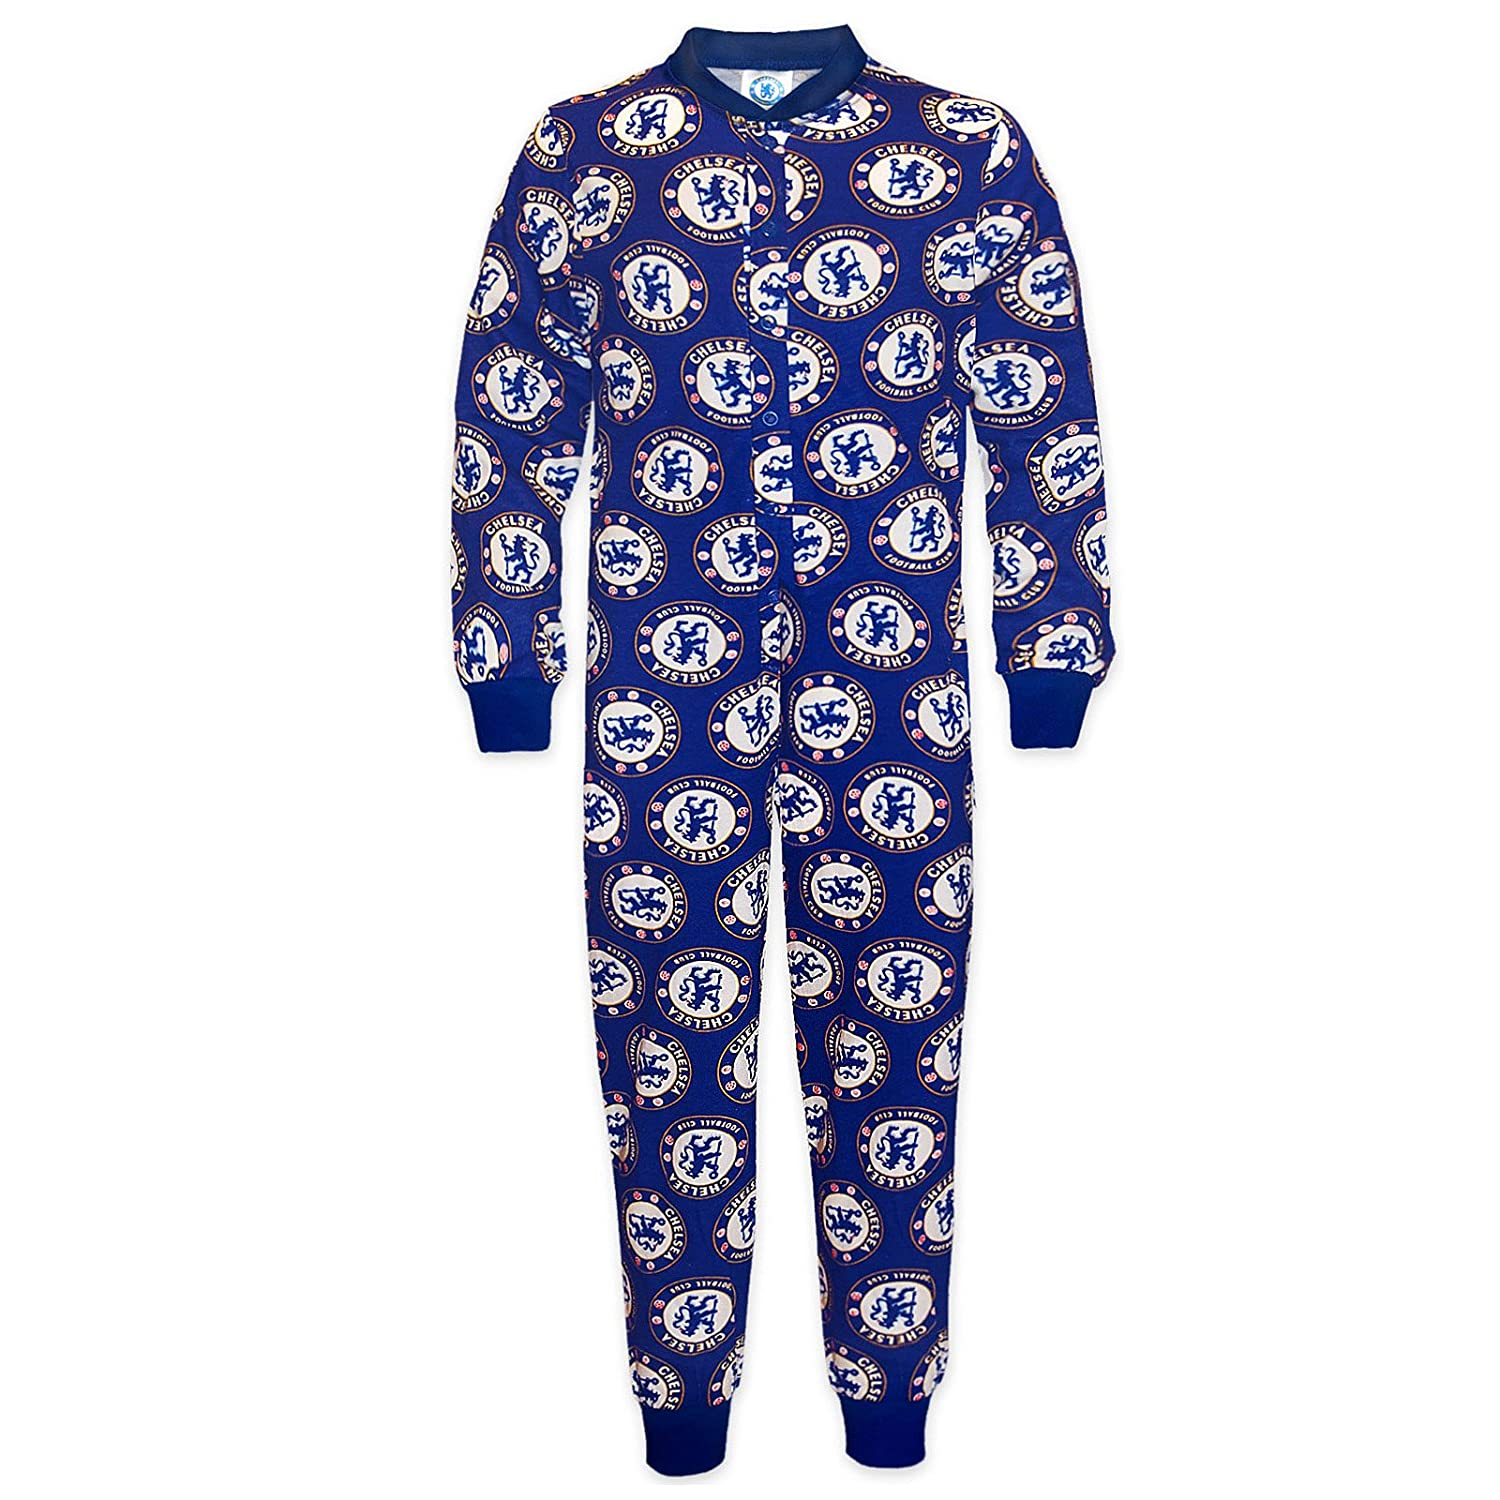 Chelsea FC Official Football Gift Boys Kids Pyjama All-In-One Blue